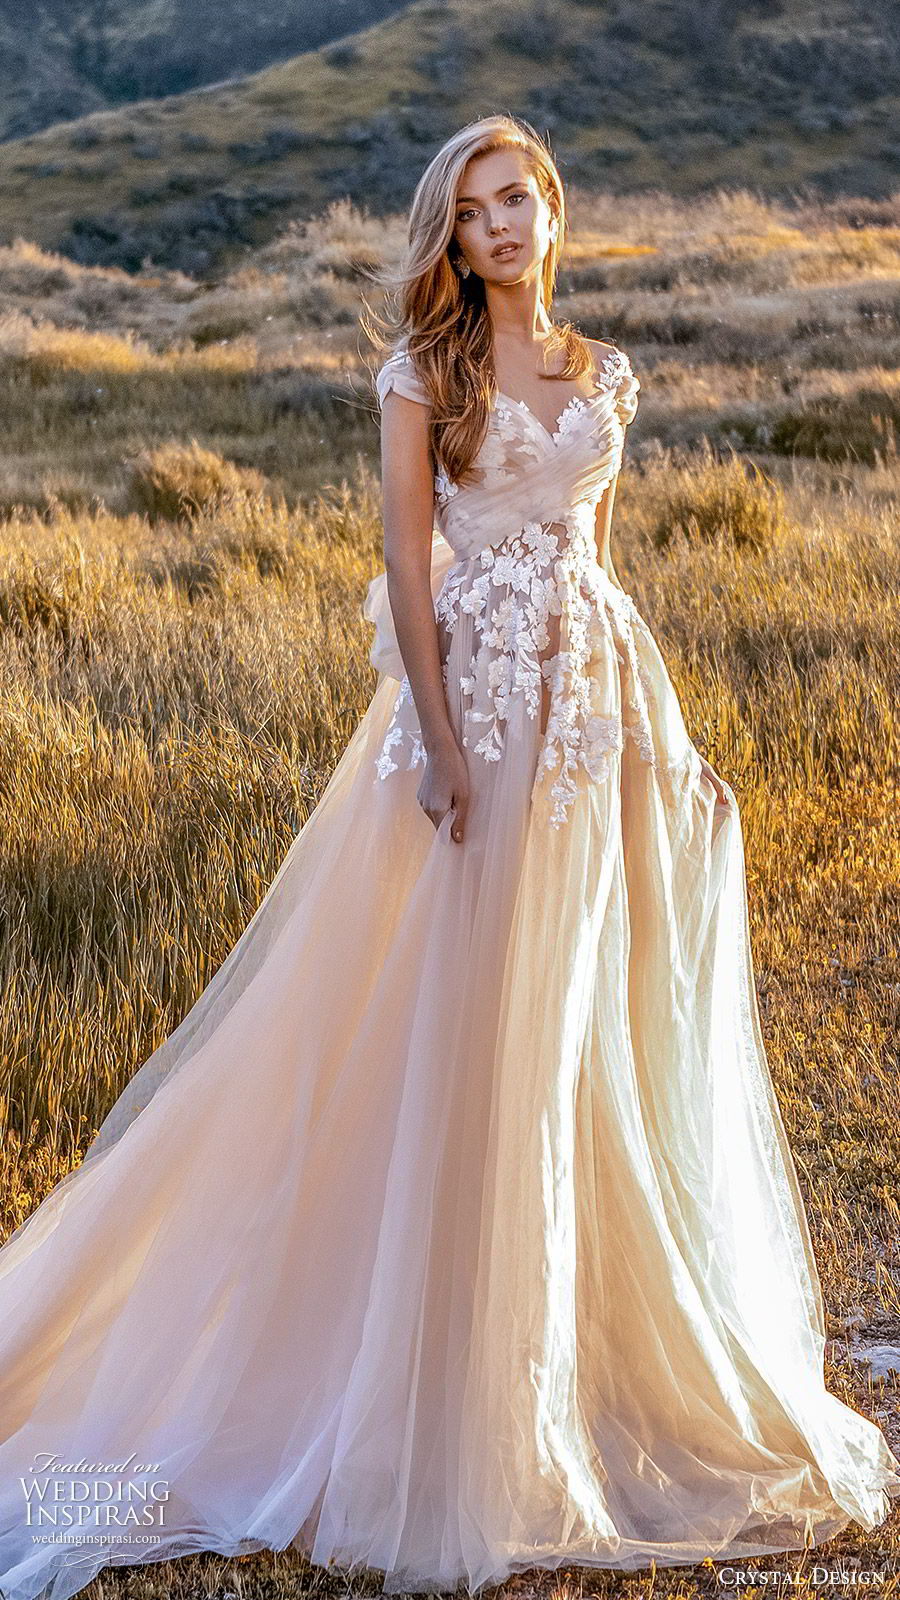 crystal design 2020 couture bridal cap sleeves sweetheart neckline embellished bodice a line ball gown wedding dress (7) blush color romantic princess keyhole back chapel train mv